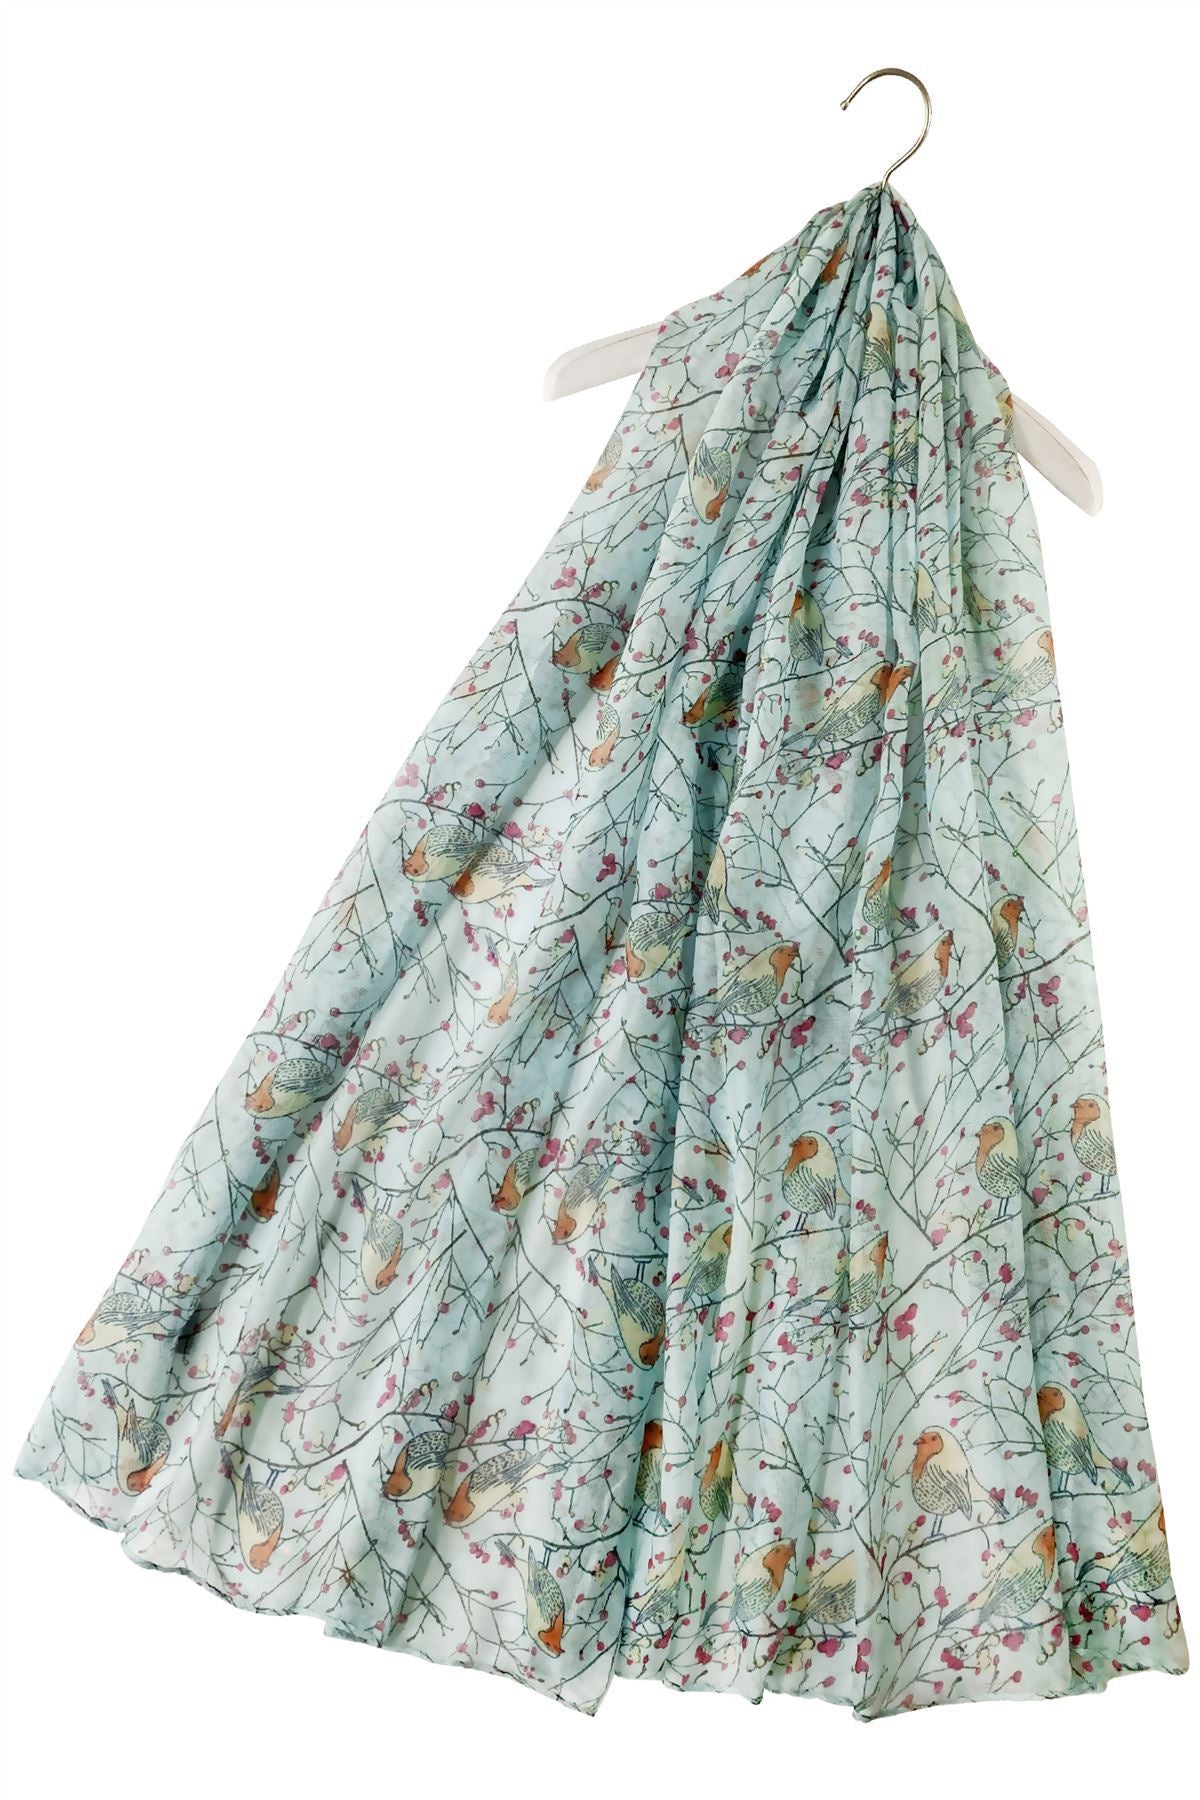 Robin Bird on Branch Print Scarf -  BABY BLUE